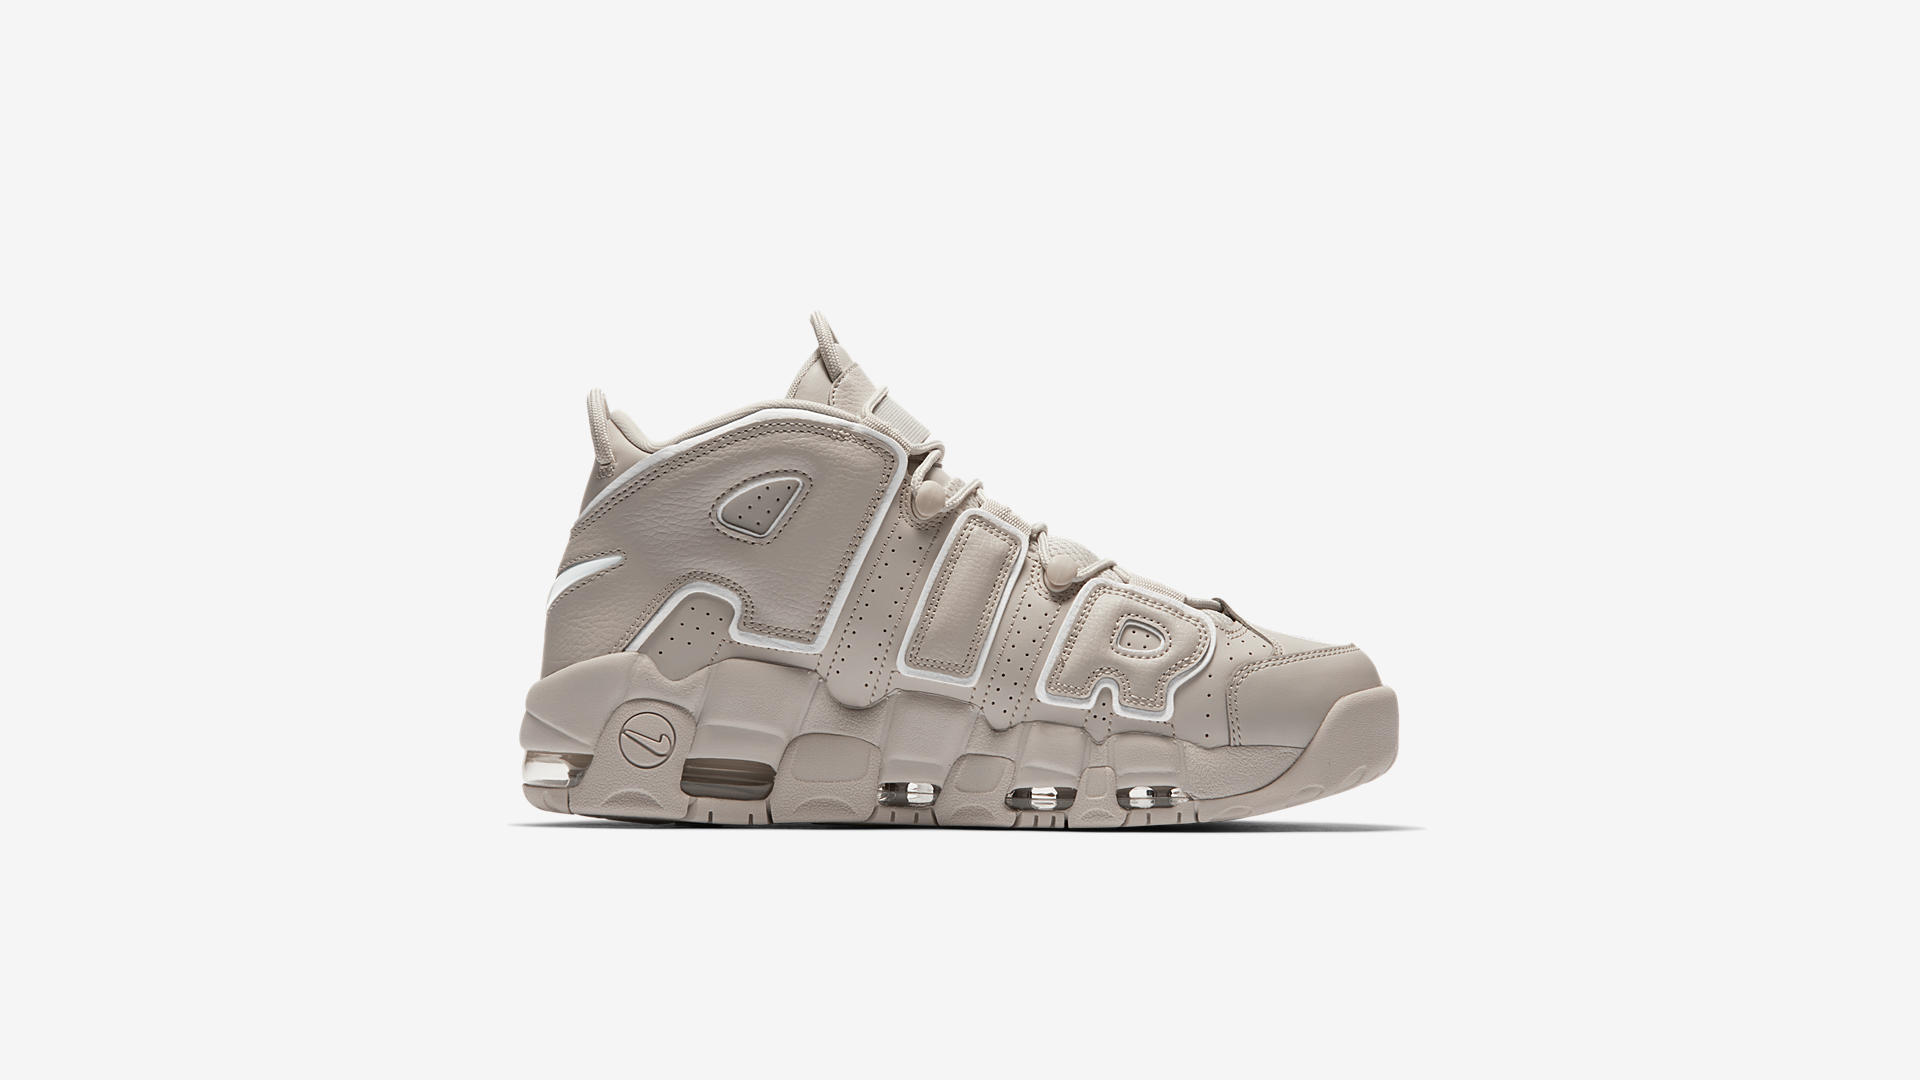 921948 001 Nike Air More Uptempo Light Bone 4